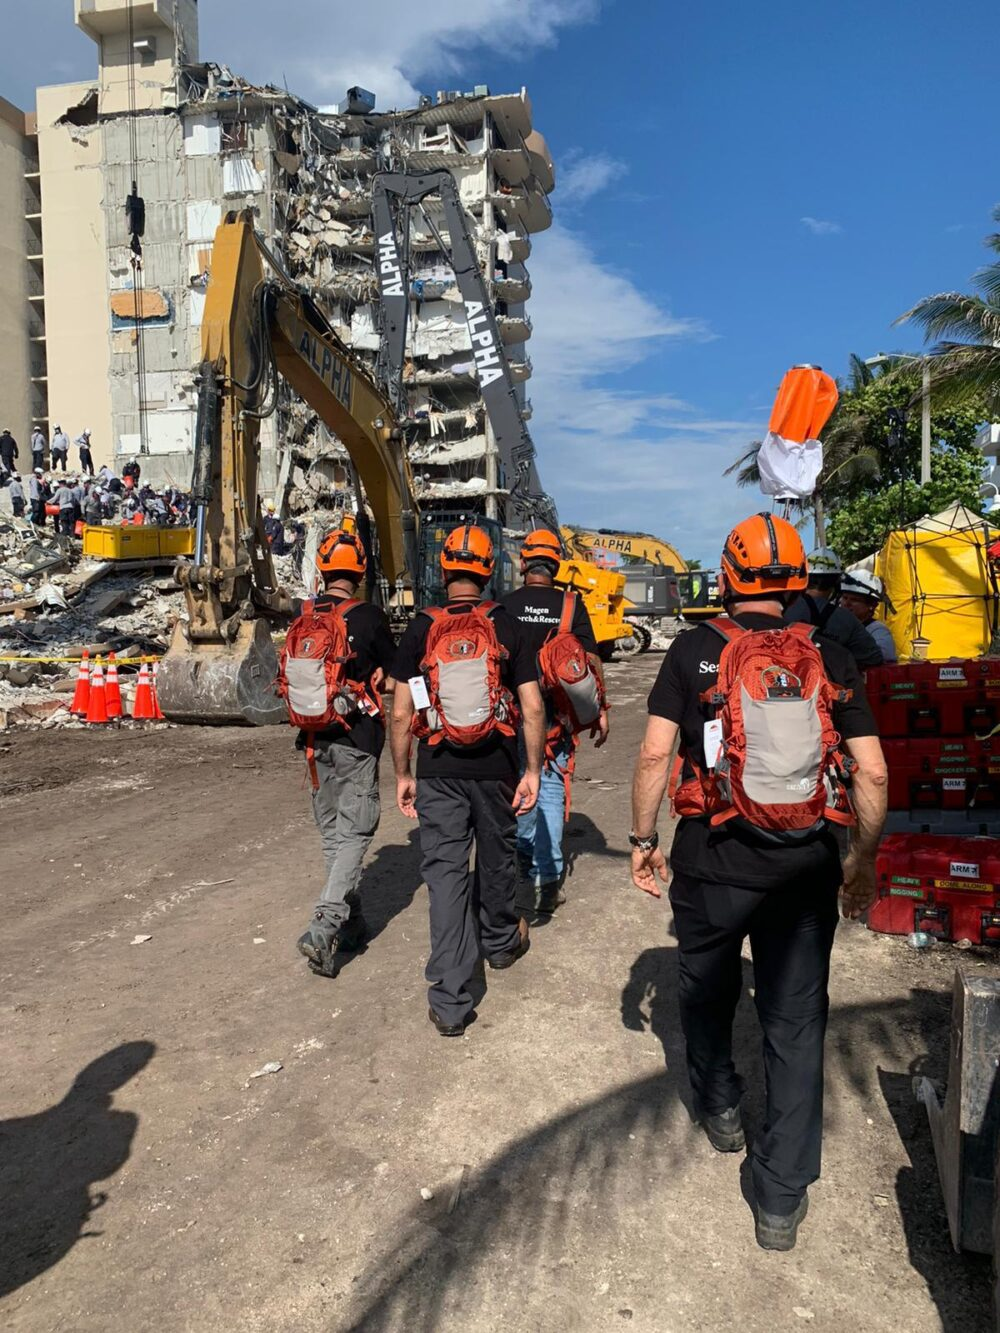 Volunteers from the SmartAID Magen Disaster search-and-rescue unit arriving in Surfside on June 28, 2021. Photo courtesy of SmartAID